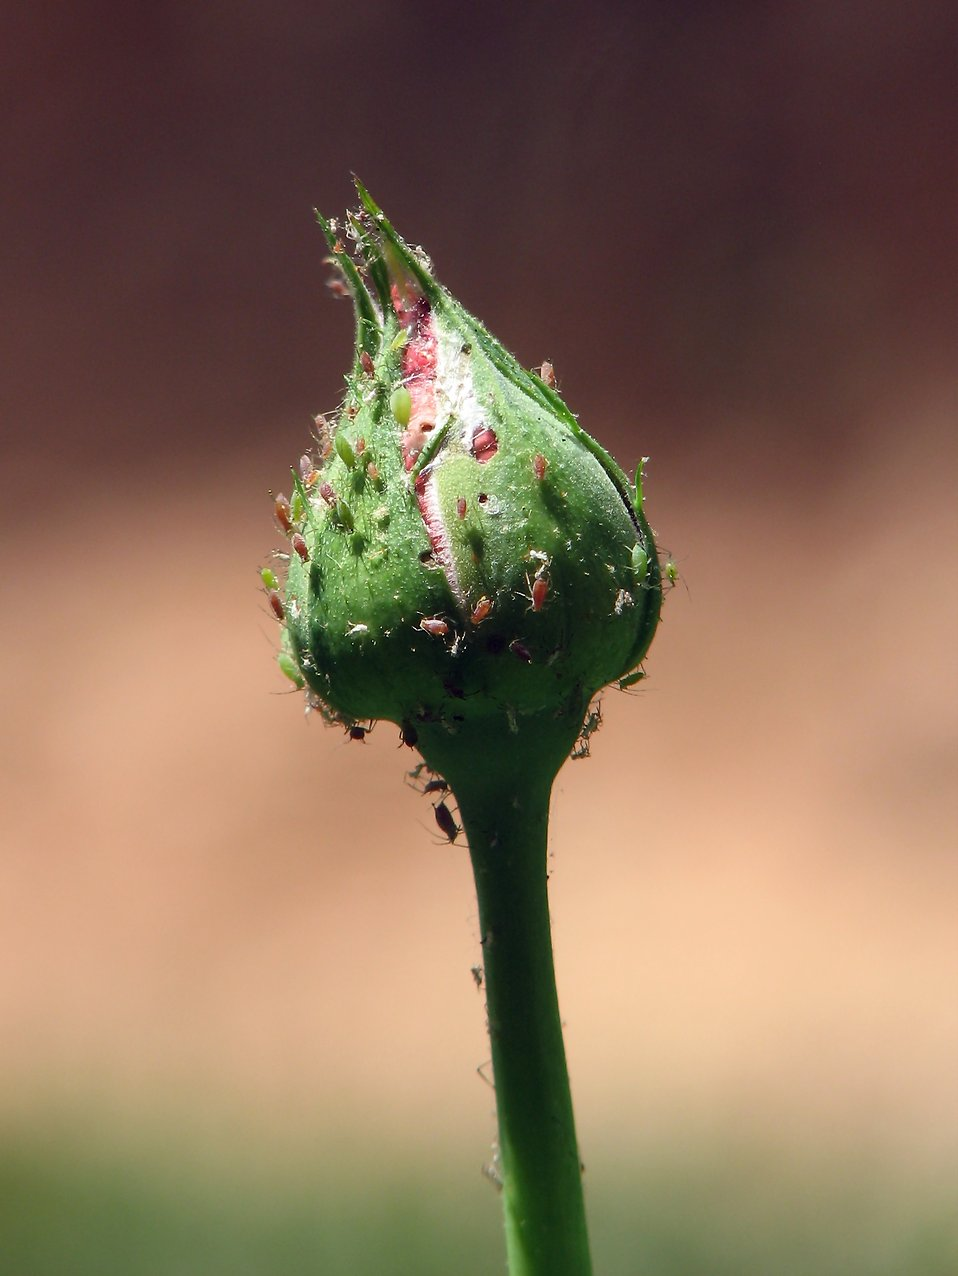 Close-up of a rose bud infested with aphids : Free Stock Photo